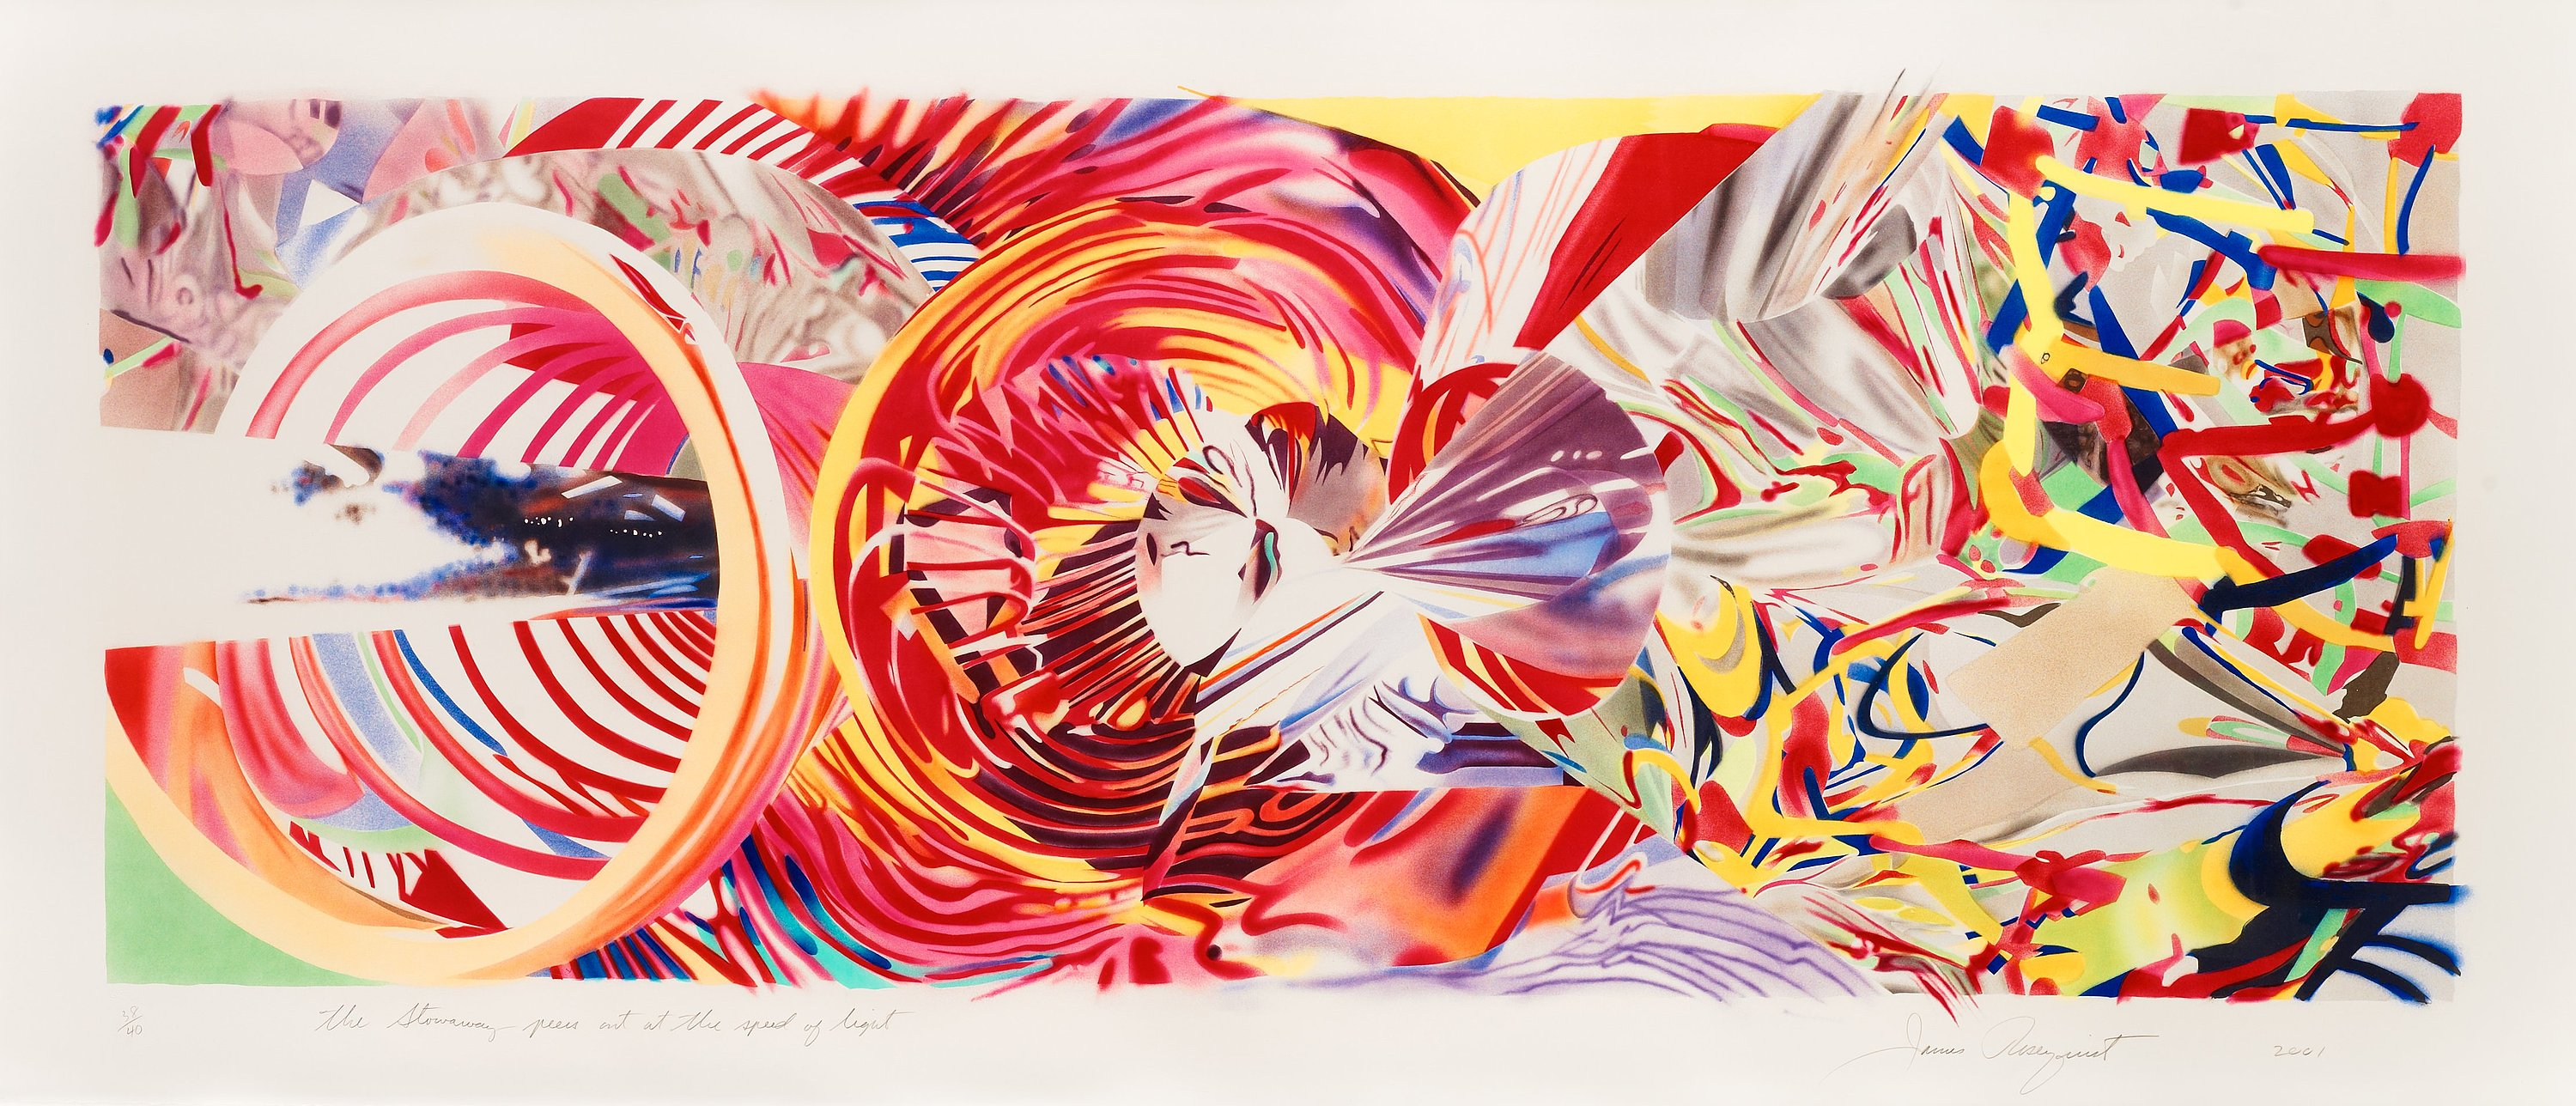 James rosenquist after quot the stowaway peers out at the speed of light